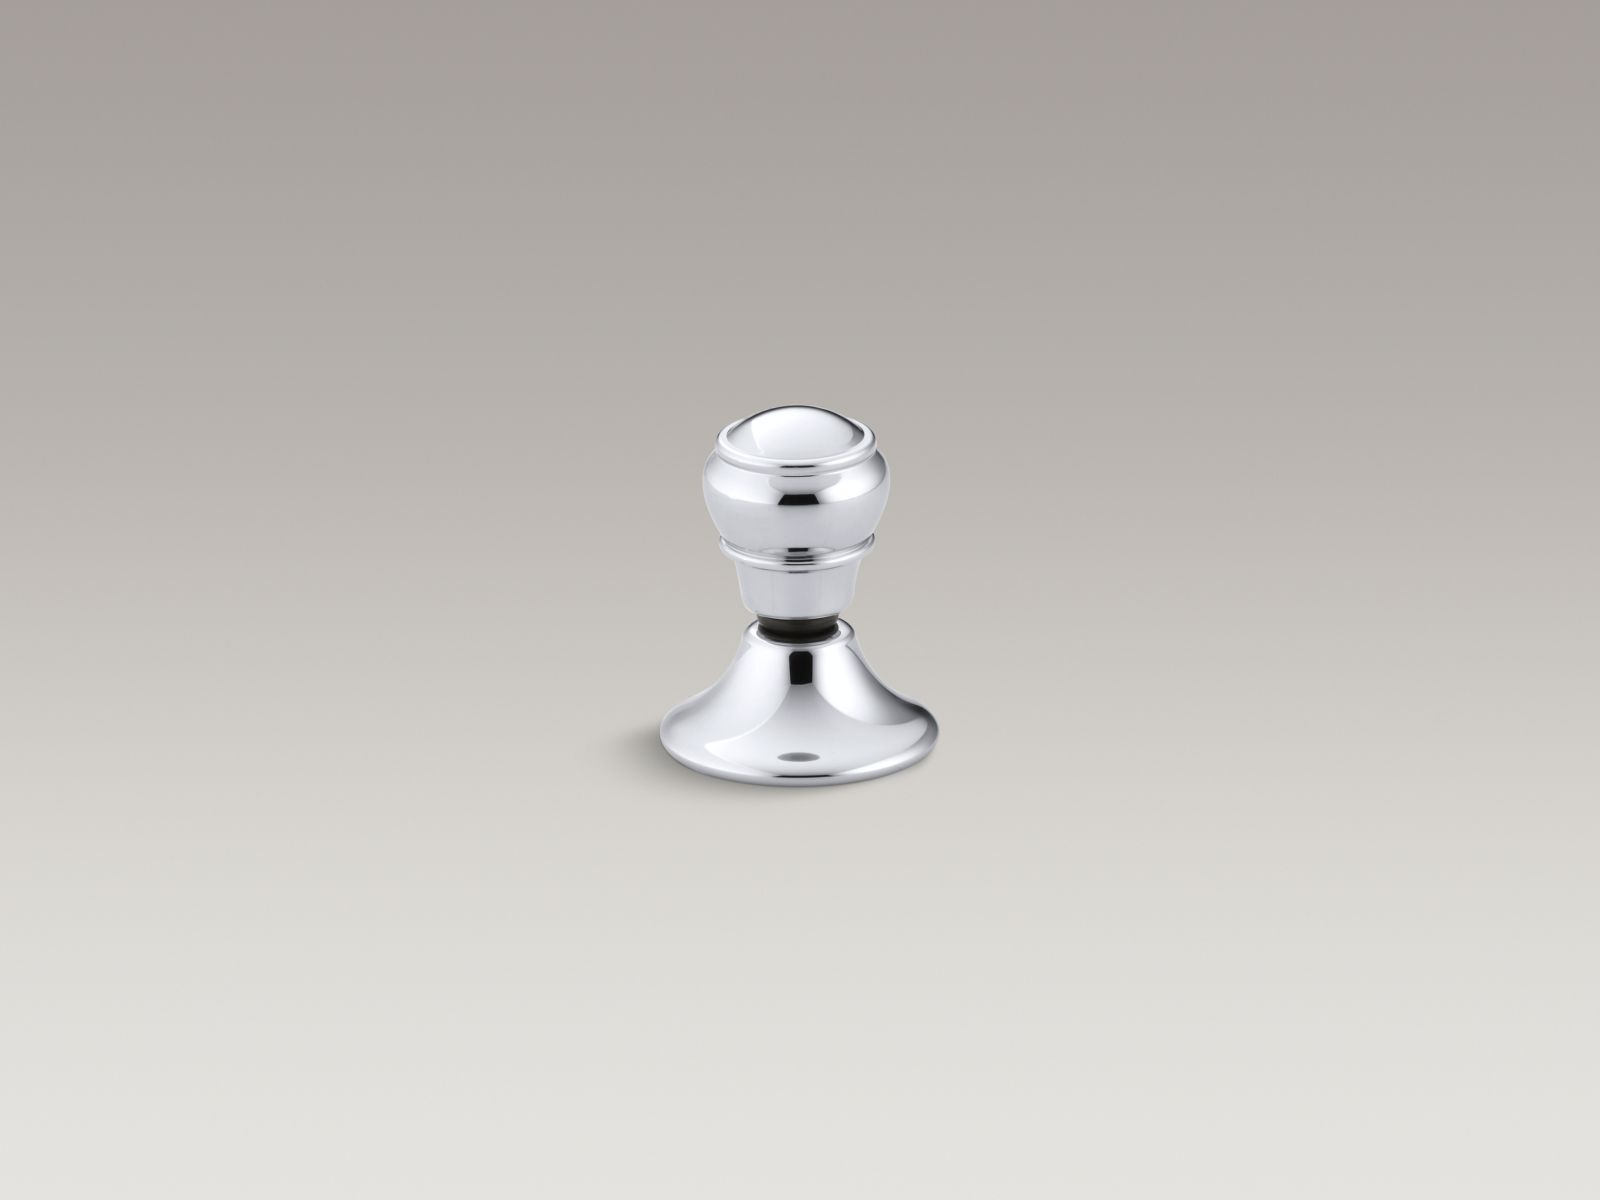 Kohler Portrait® K-7677-CP lift knob flush actuator for K-3826 Polished Chrome